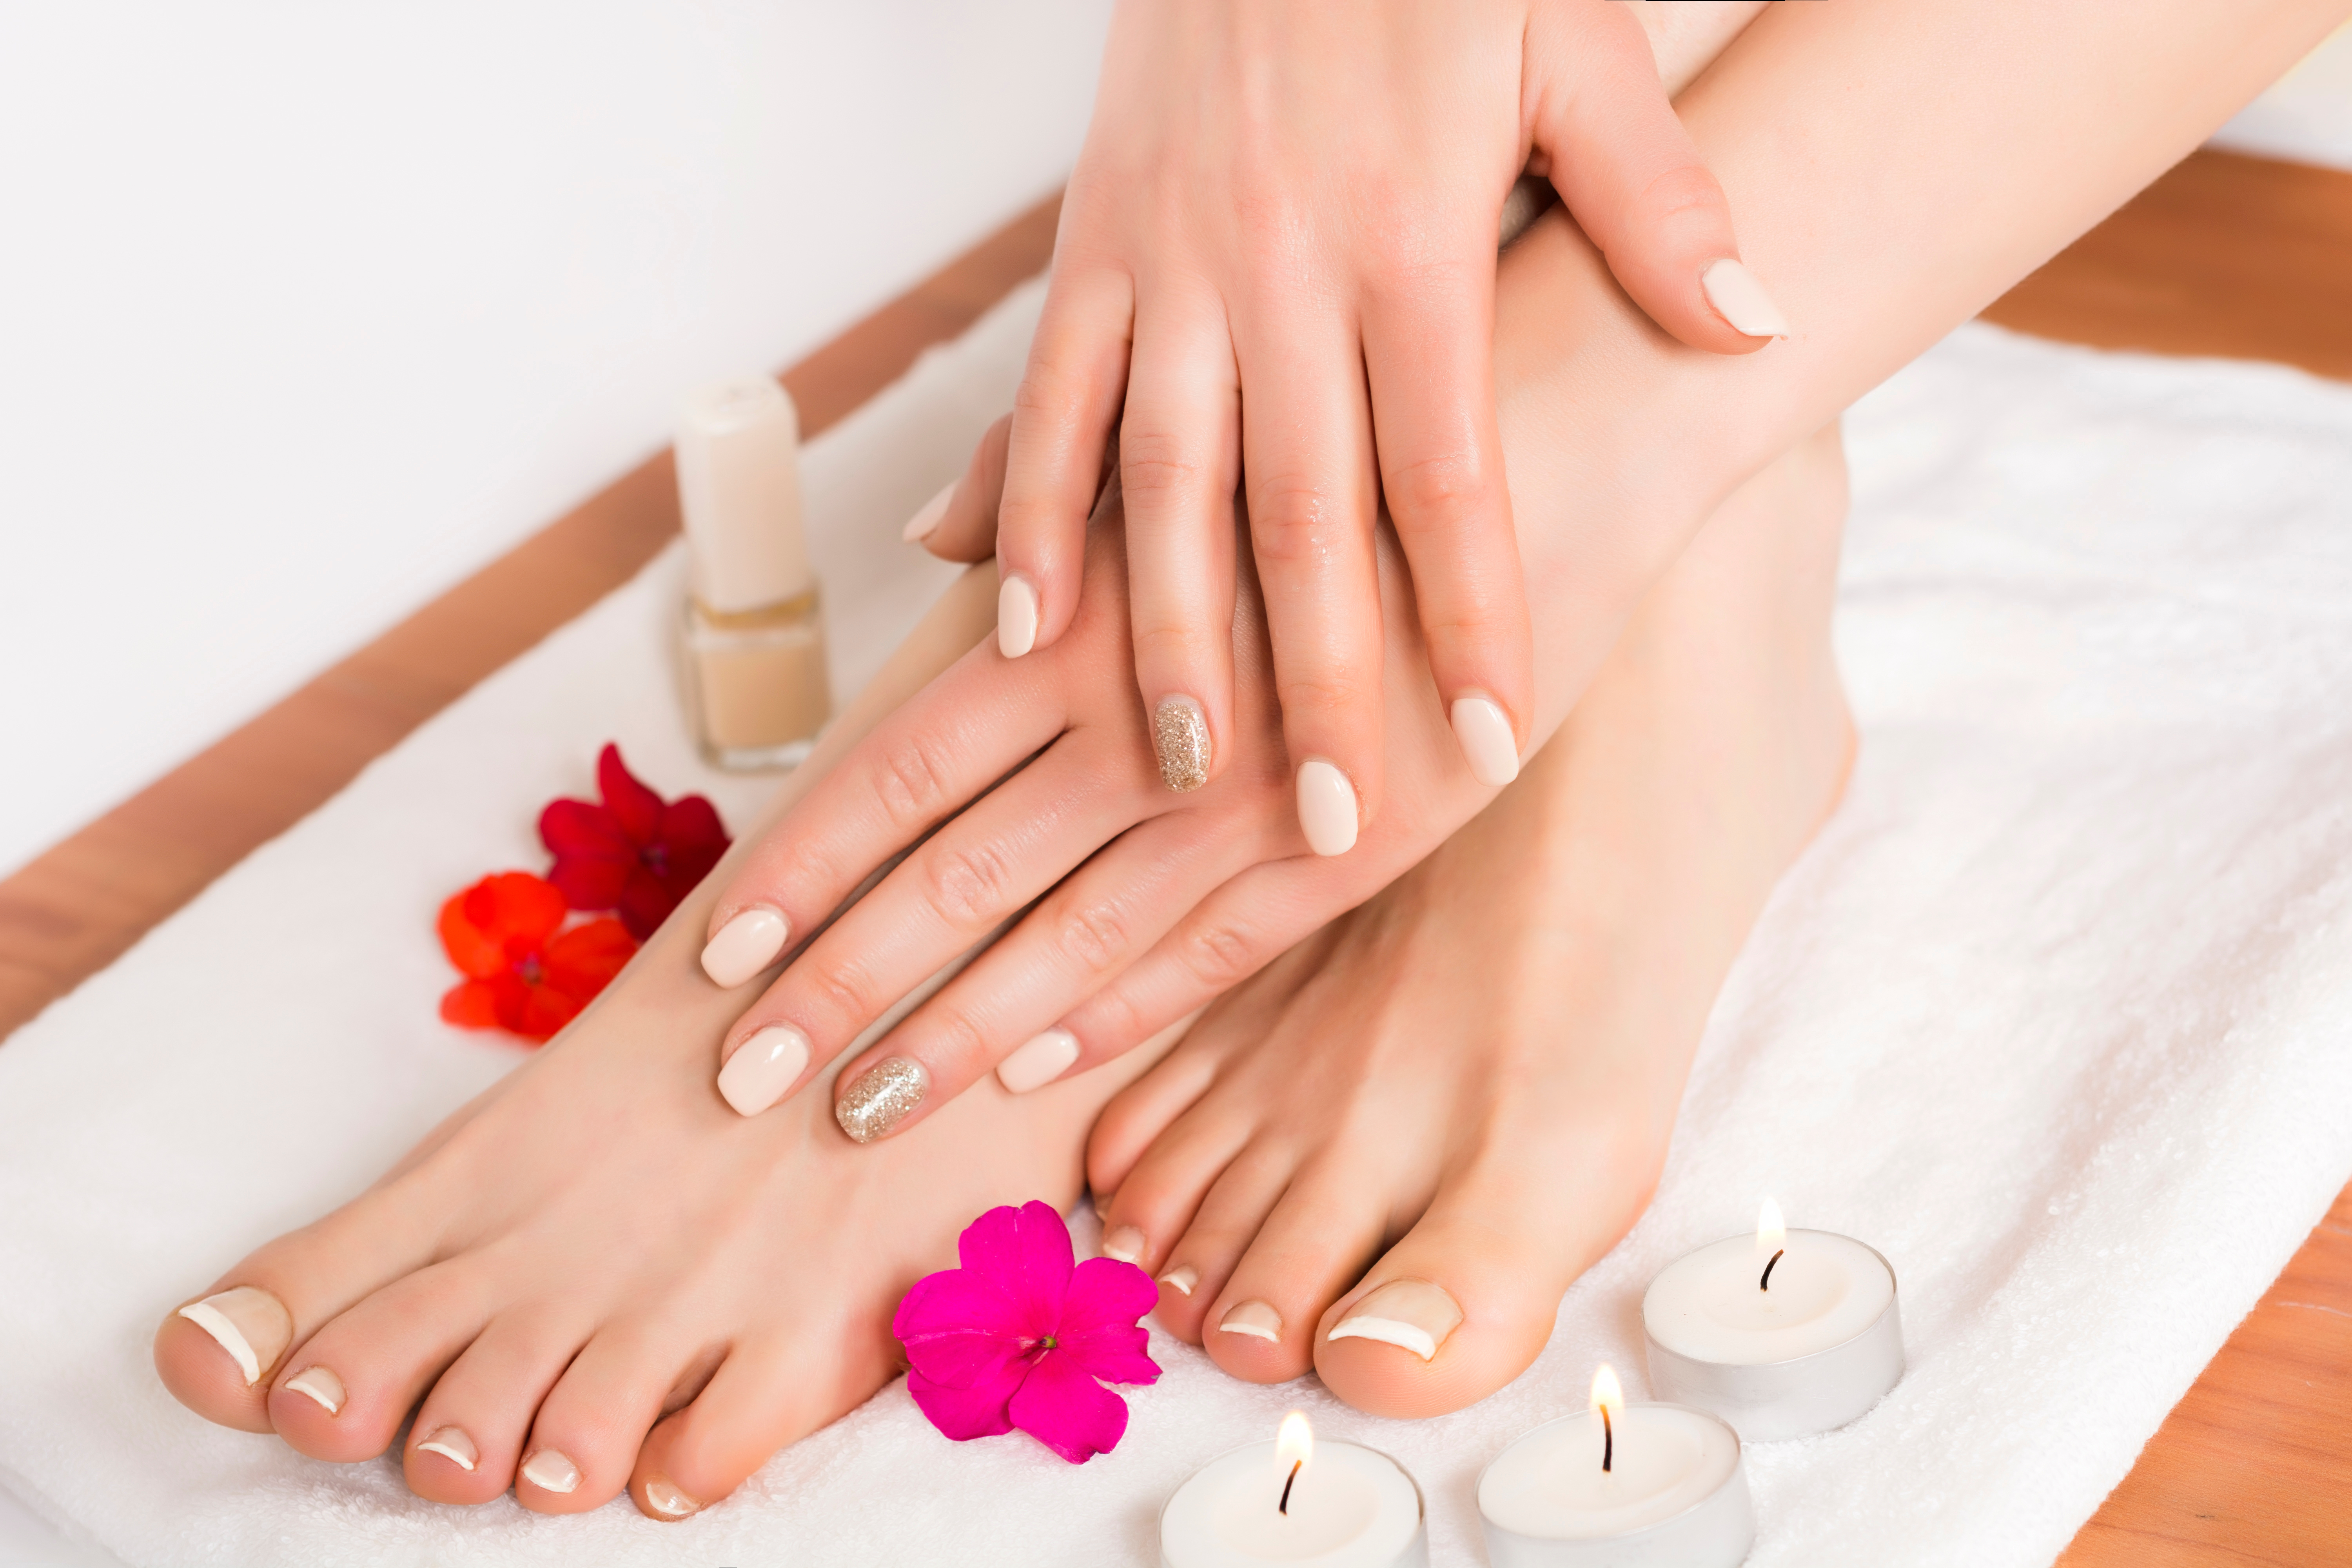 https://0901.nccdn.net/4_2/000/000/04d/add/Canva---Beauty-female-feet-and-hands-at-spa-salon-on-pedicure-procedure-and-flowers-and-candles-on-white-towel-6000x4000.jpg